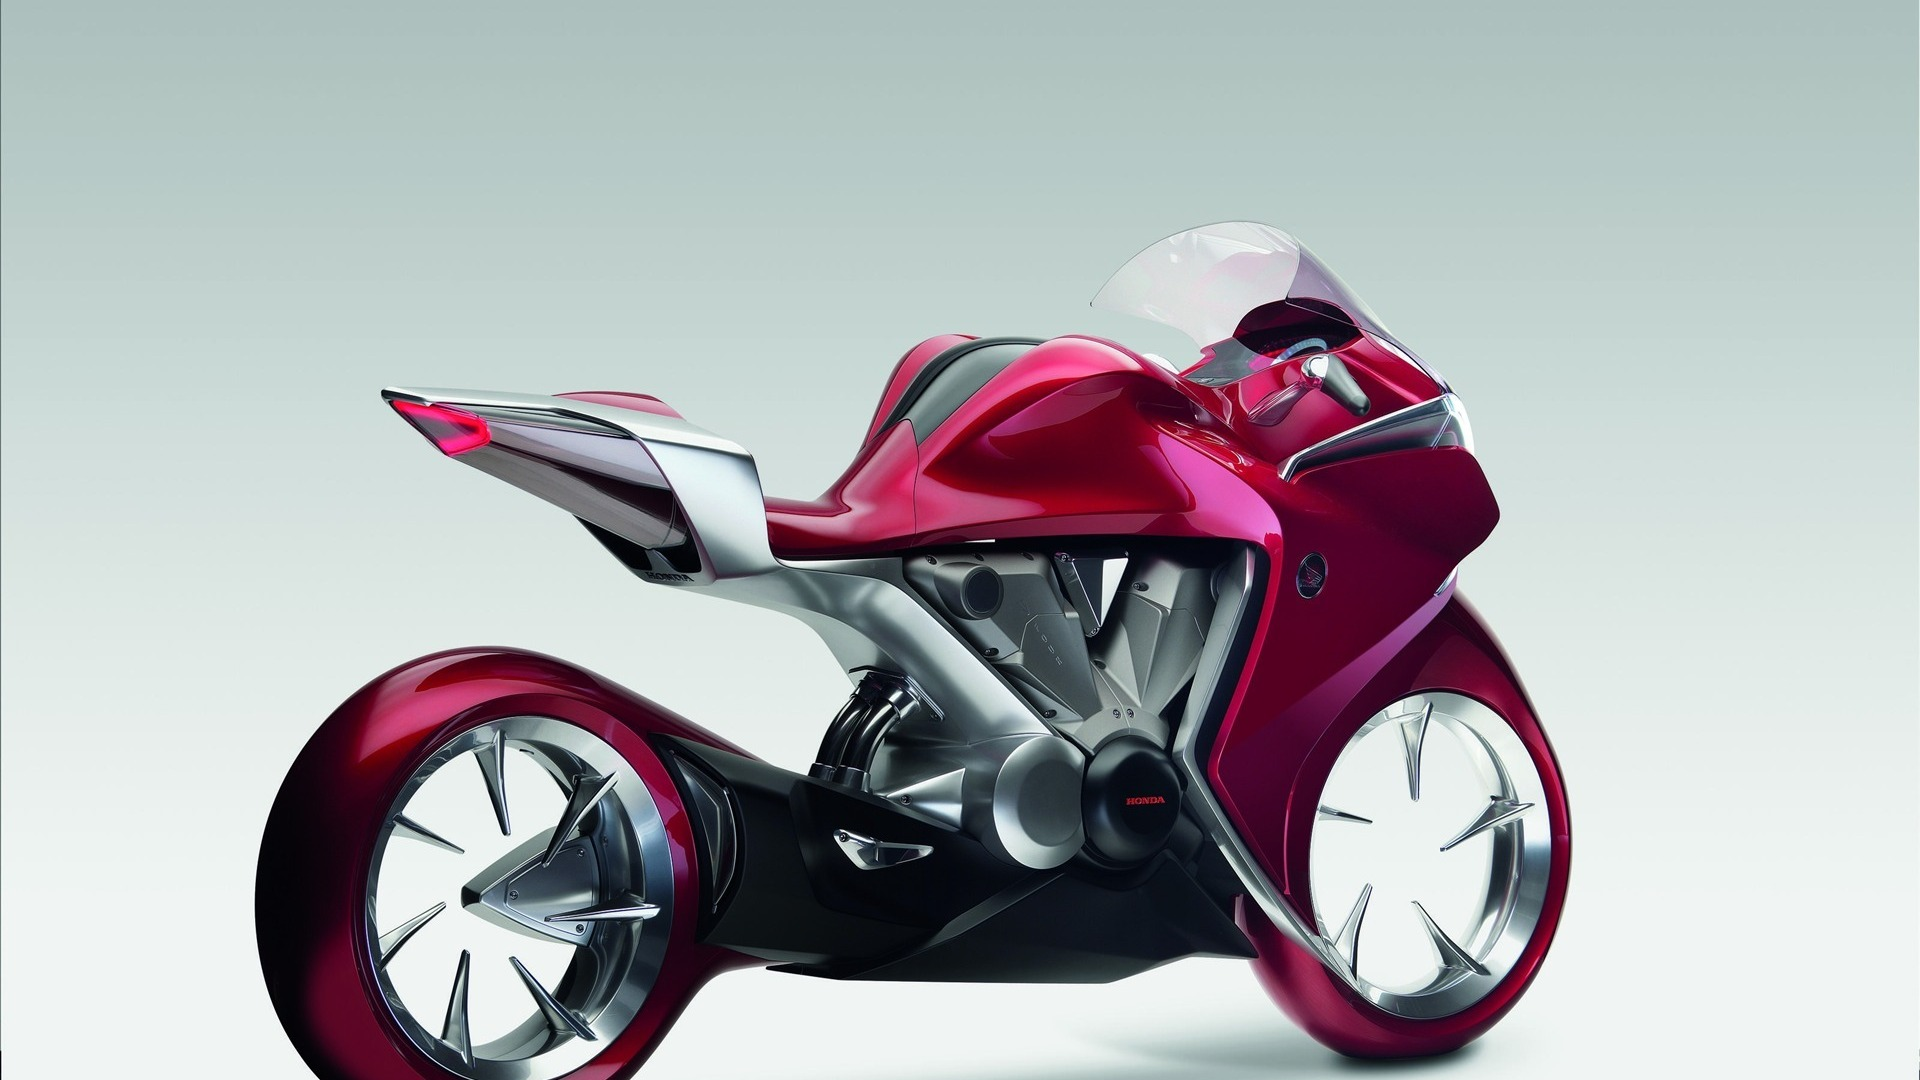 Cool HD Pink Motorcycle - HD Wallpapers